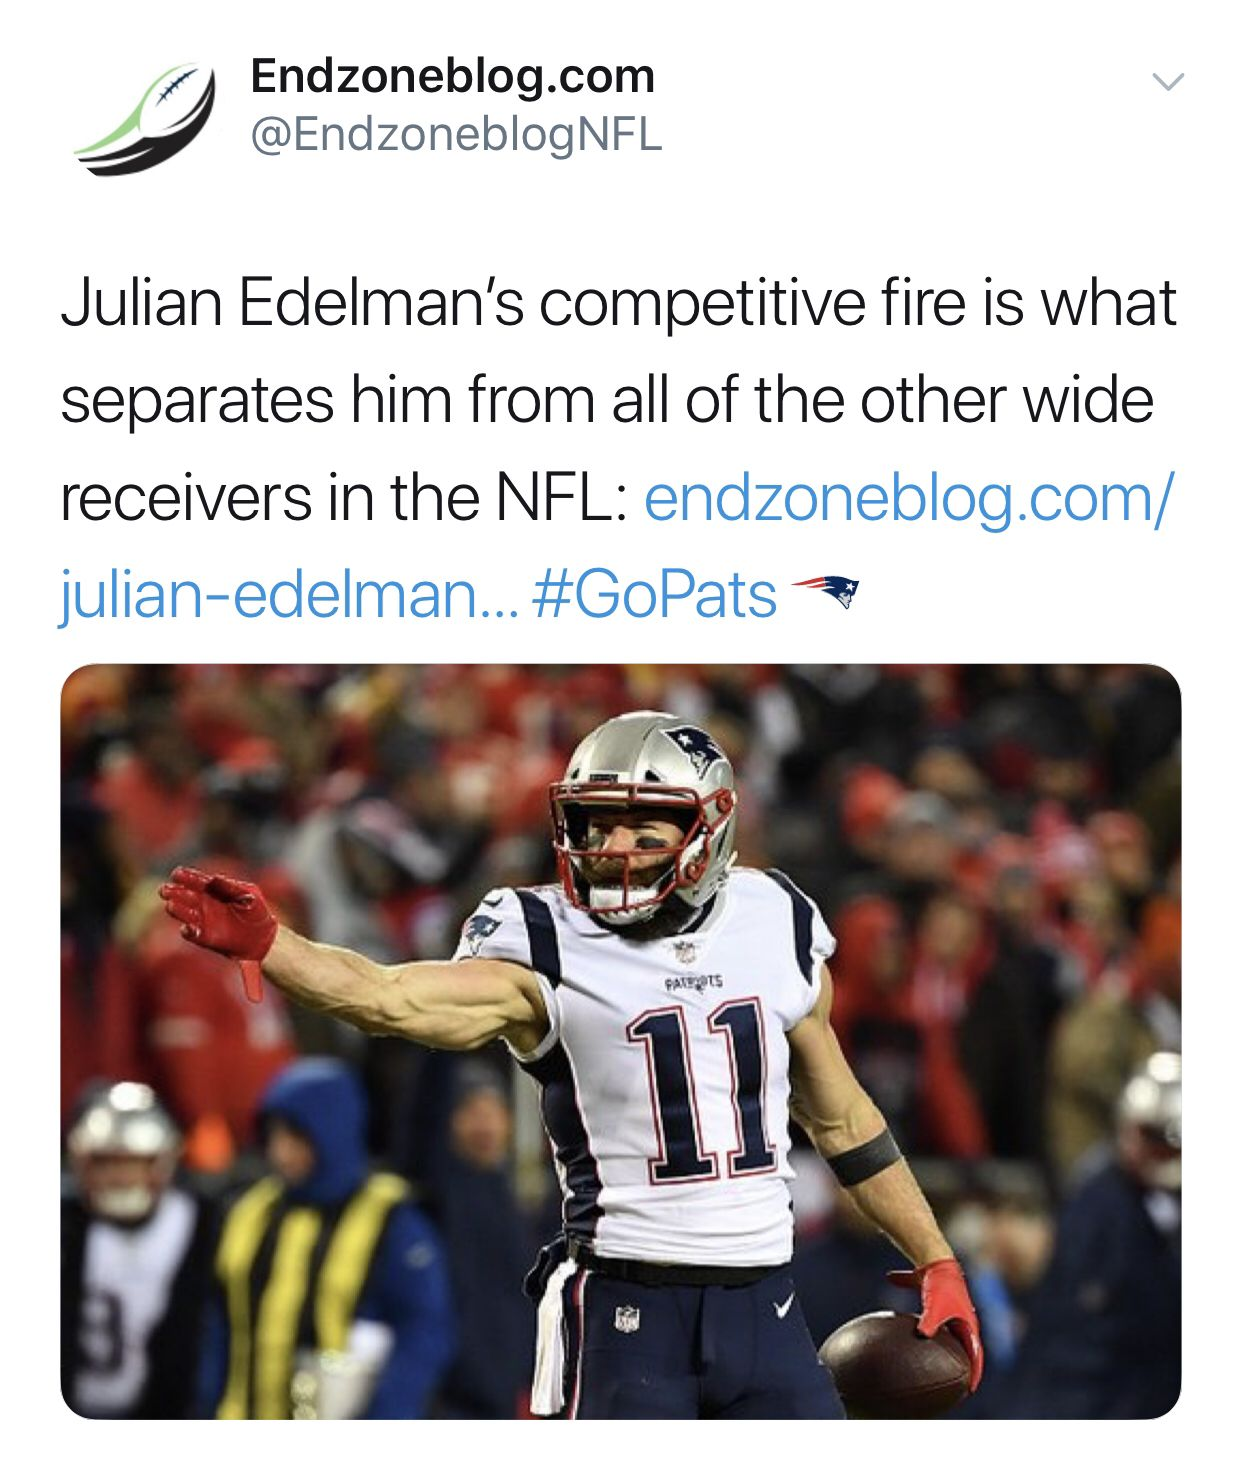 Julian Edelman S Competitive Fire Makes Him Different From The Pack Julian Edelman Football Streaming Live Football Streaming